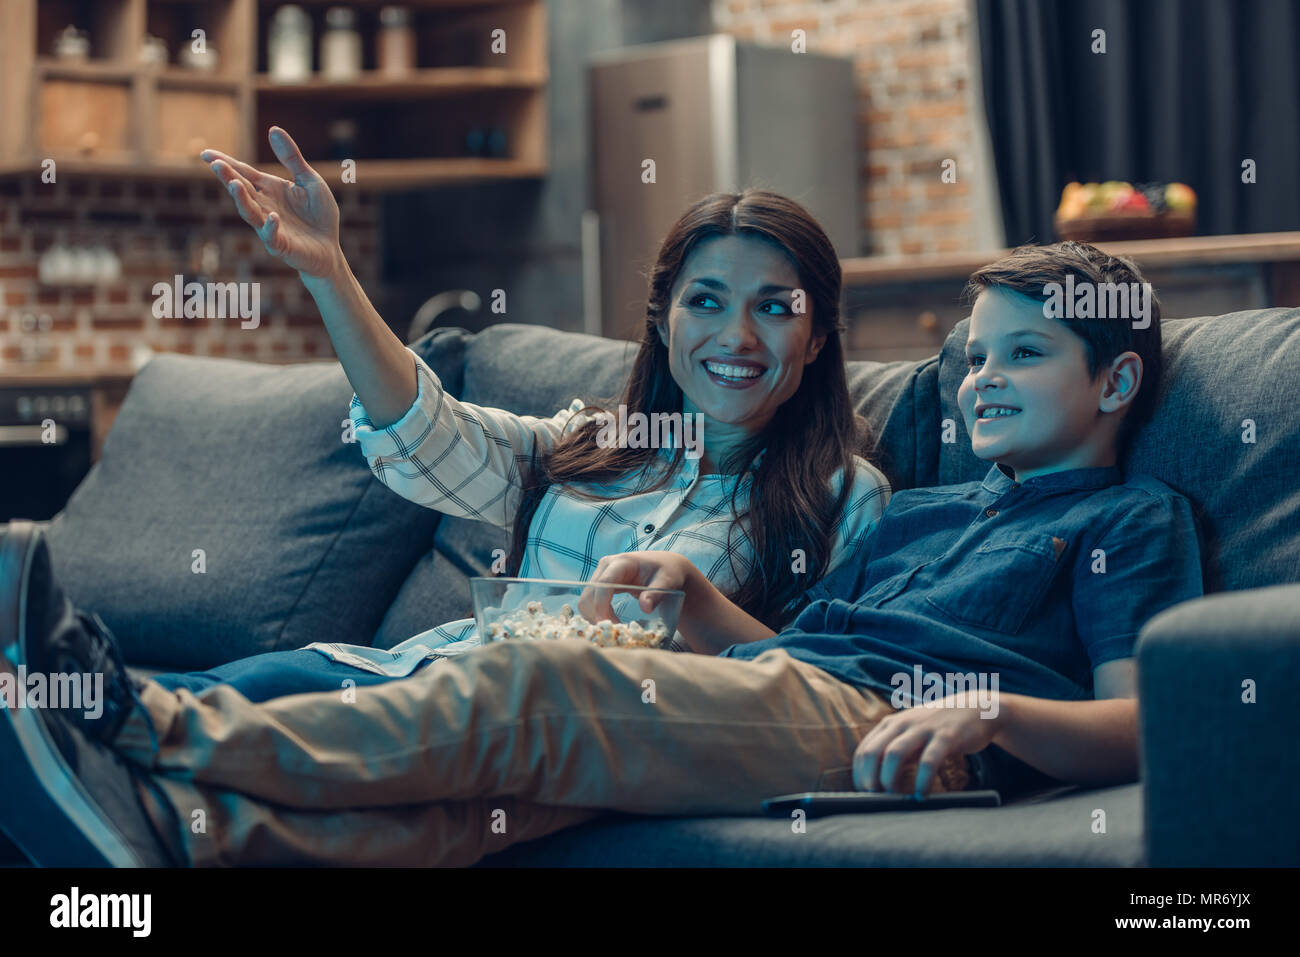 Little son and his young mother talking while watching tv on couch and eating popcorn - Stock Image